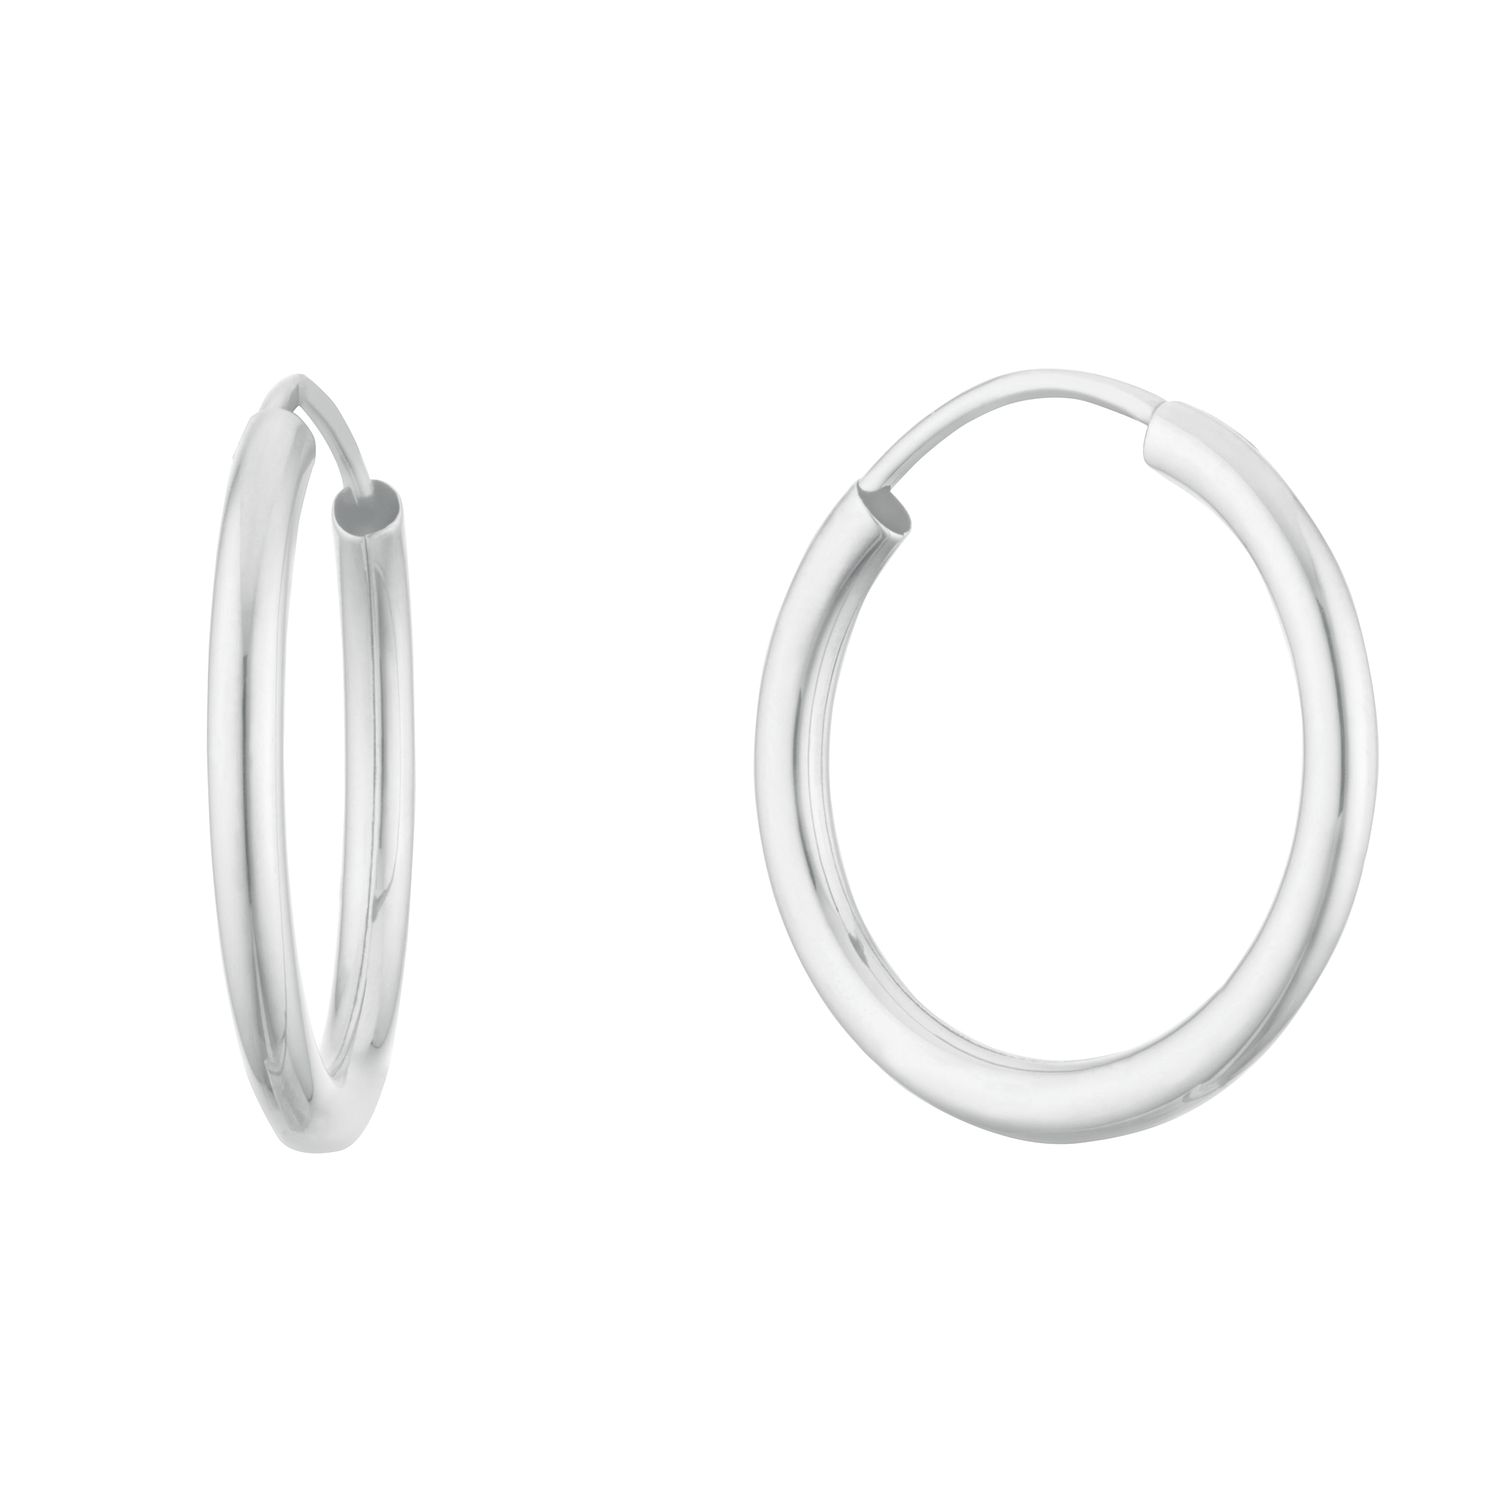 9ct White Gold 16mm Sleeper Earrings - Product number 3152944